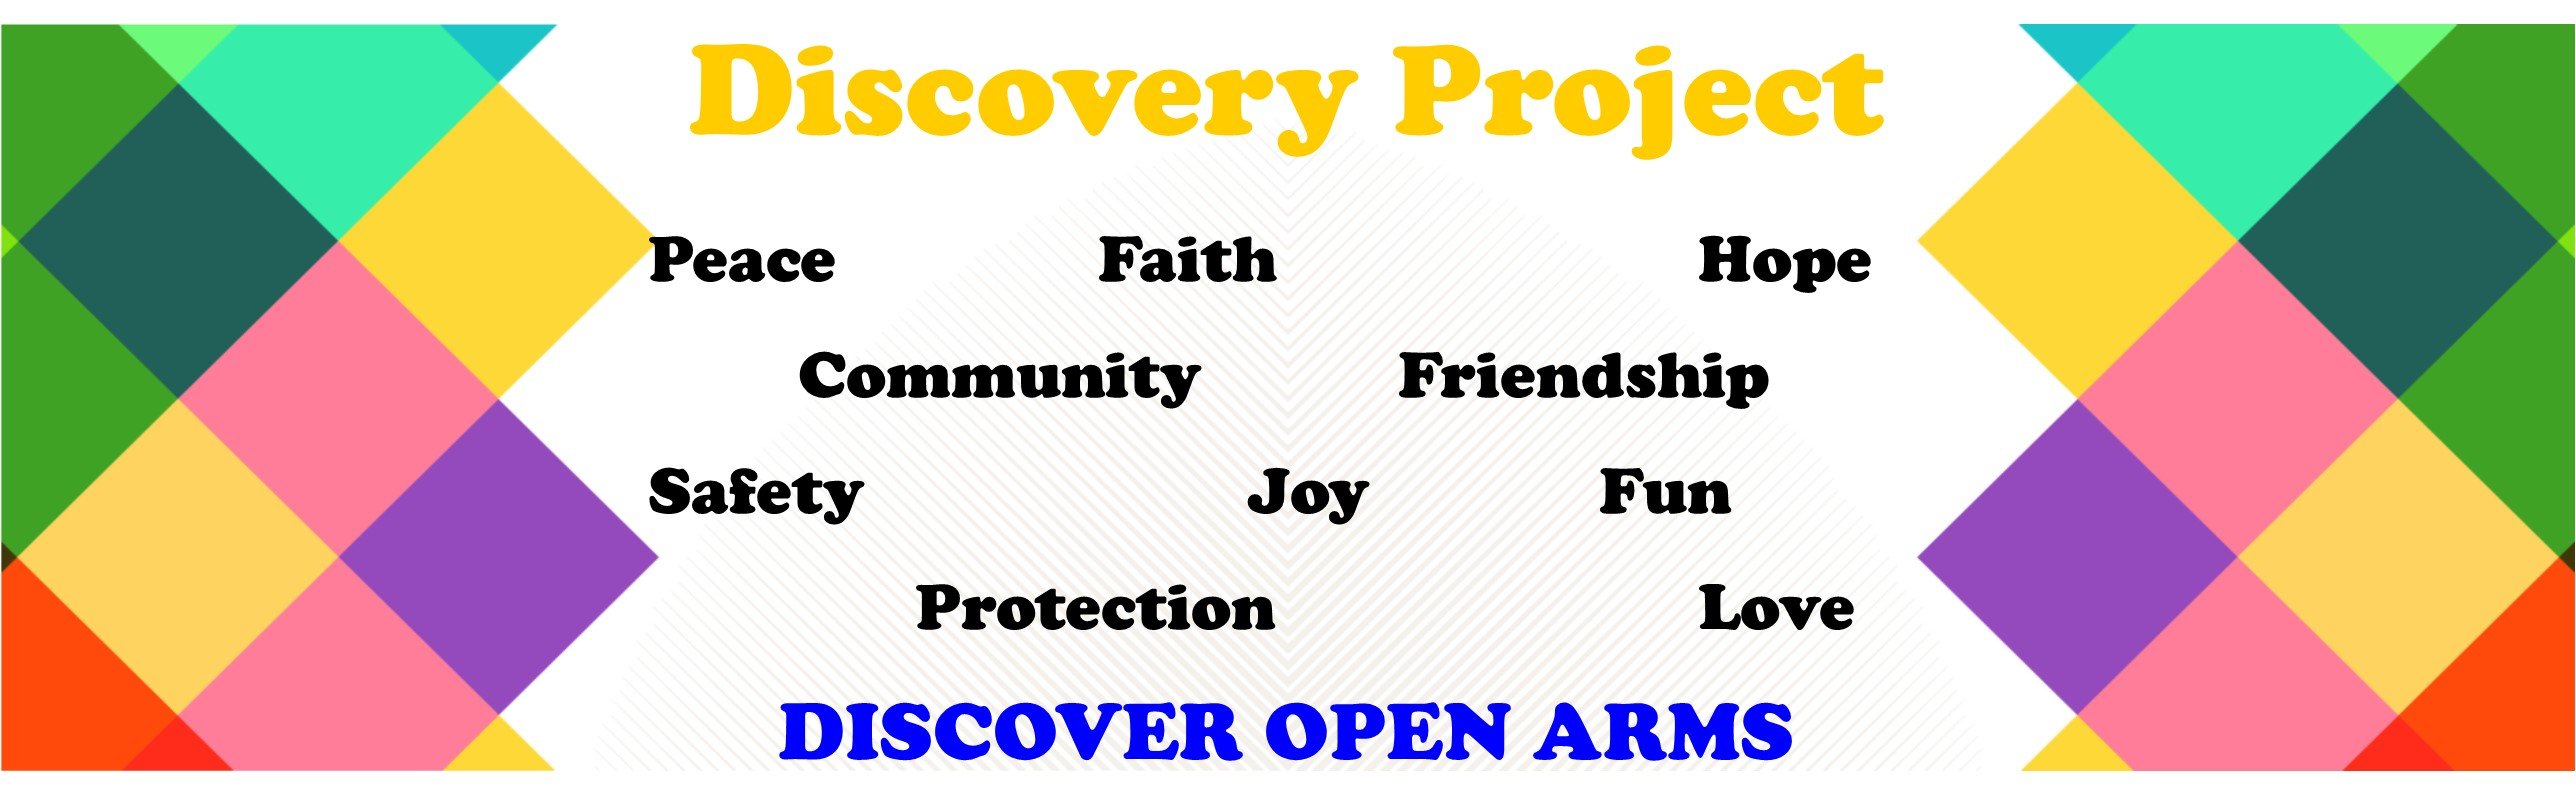 Discovery Project